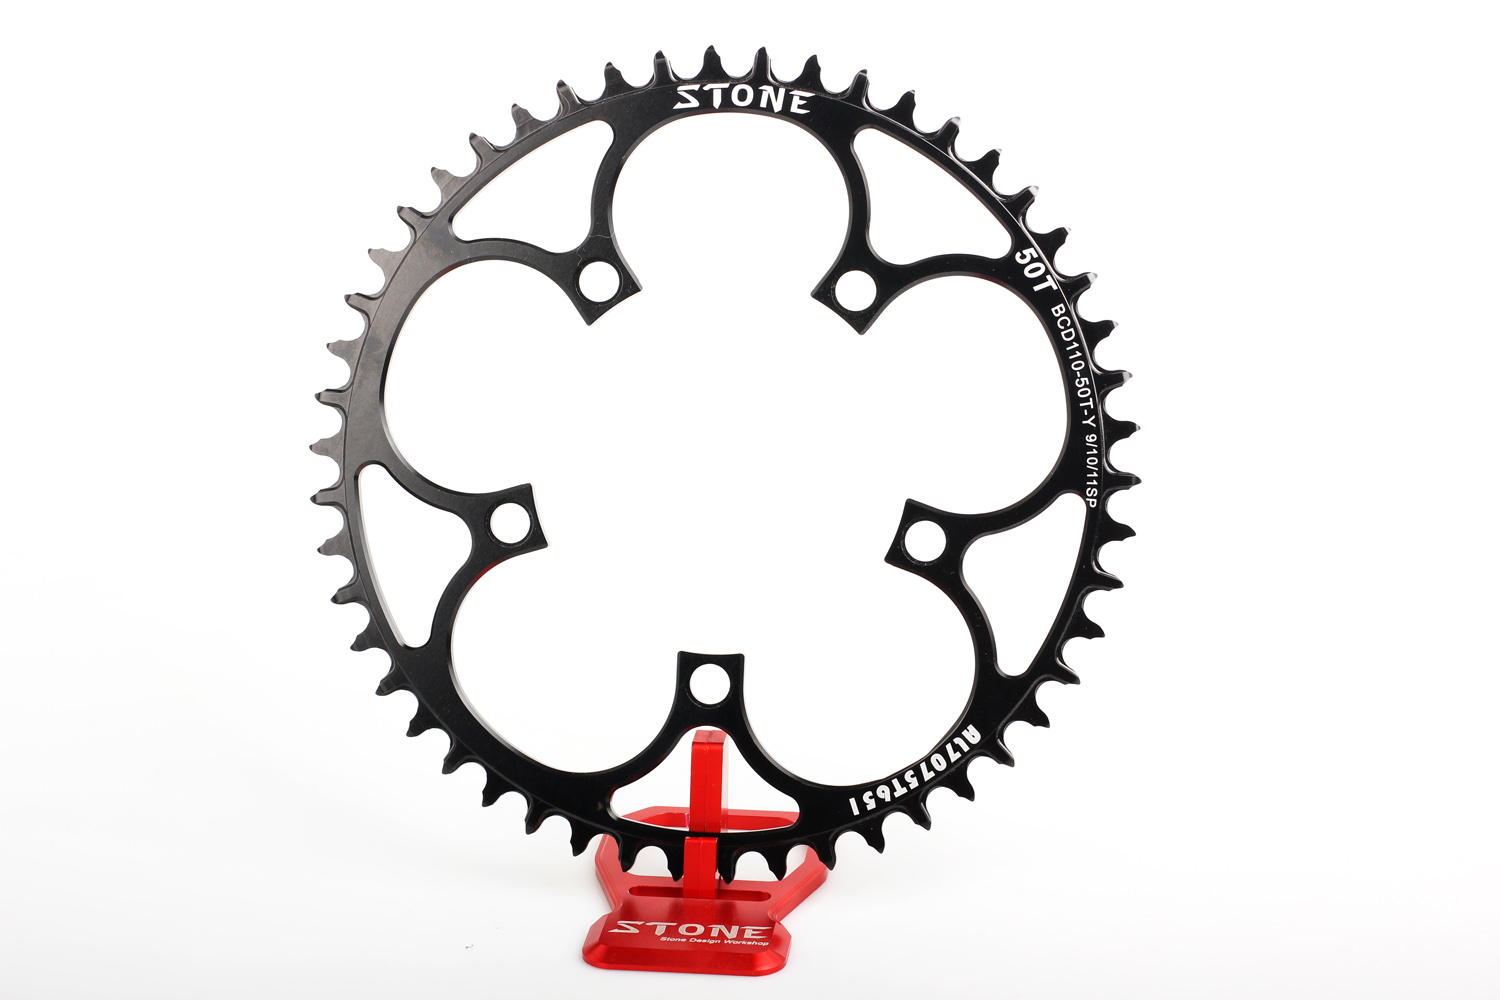 BCD110 5bolt 1X cx gravel Aero Single Circle Chainring for Sram Rotor 46t to 60t